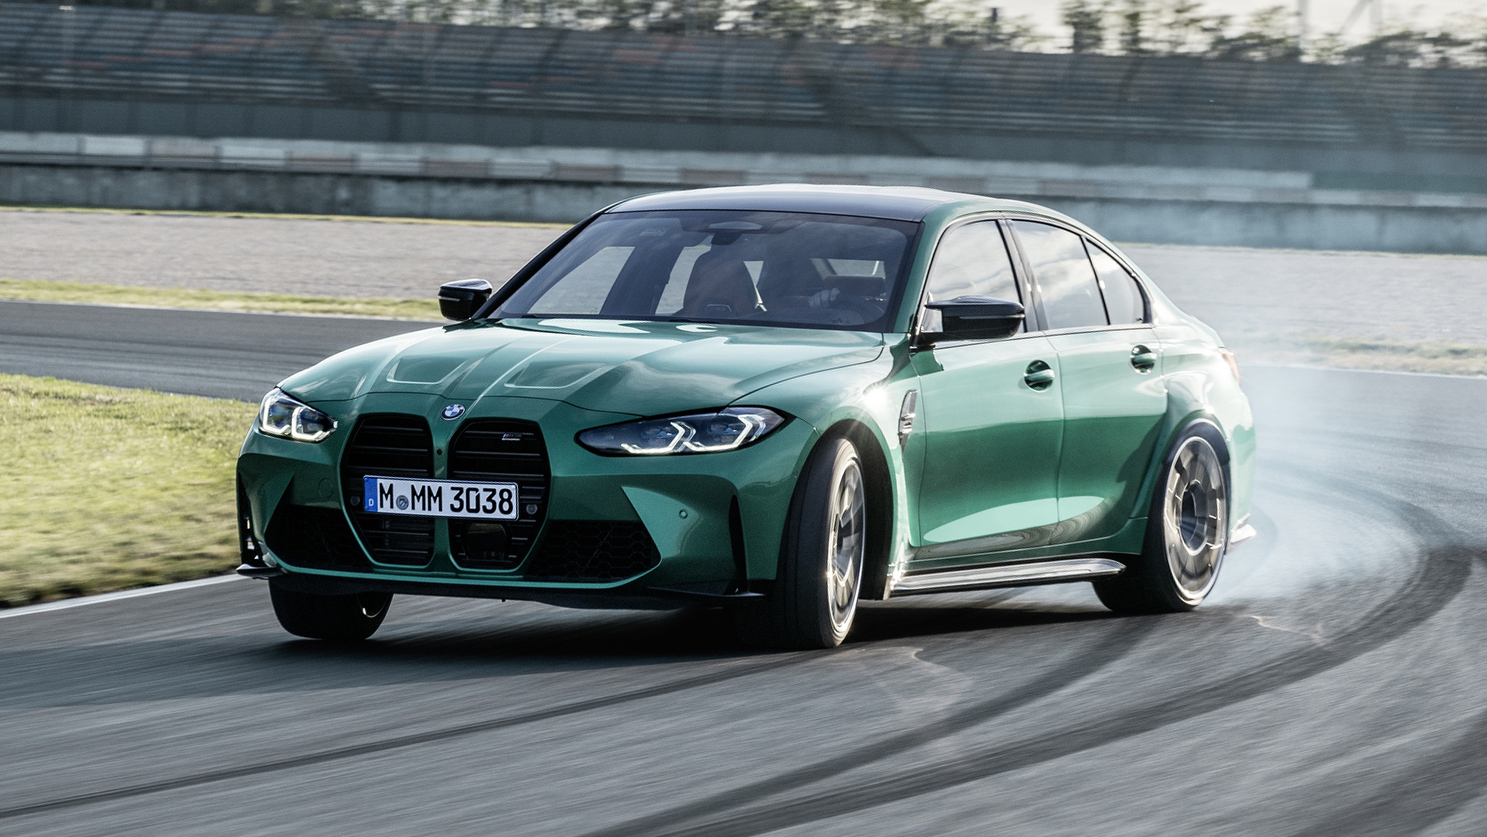 2021 Bmw M3 Competition Saloon Now On Sale Carbuyer